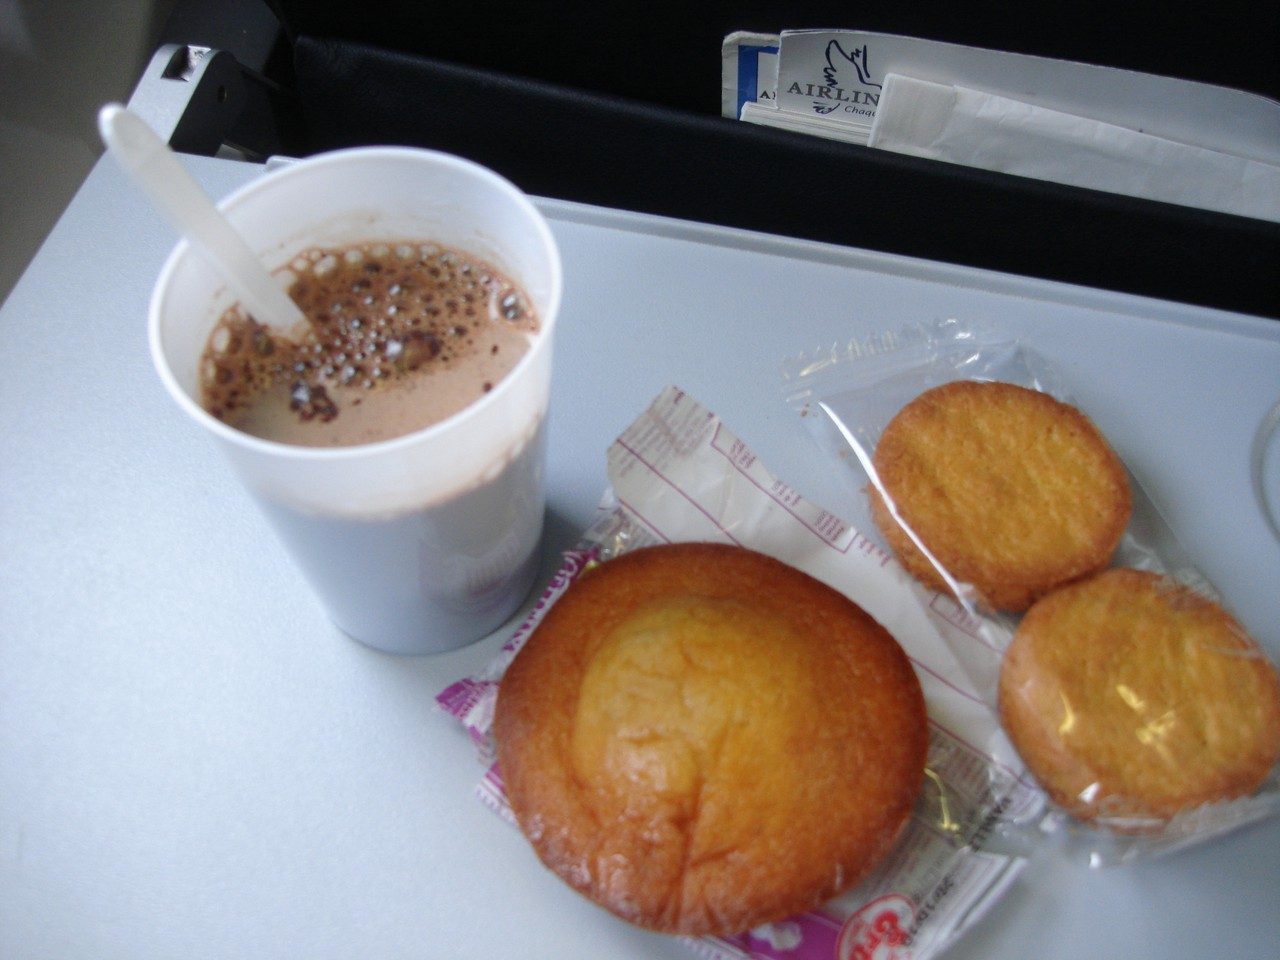 photo 22-sept-boarding-airlinair-inflight-snacking